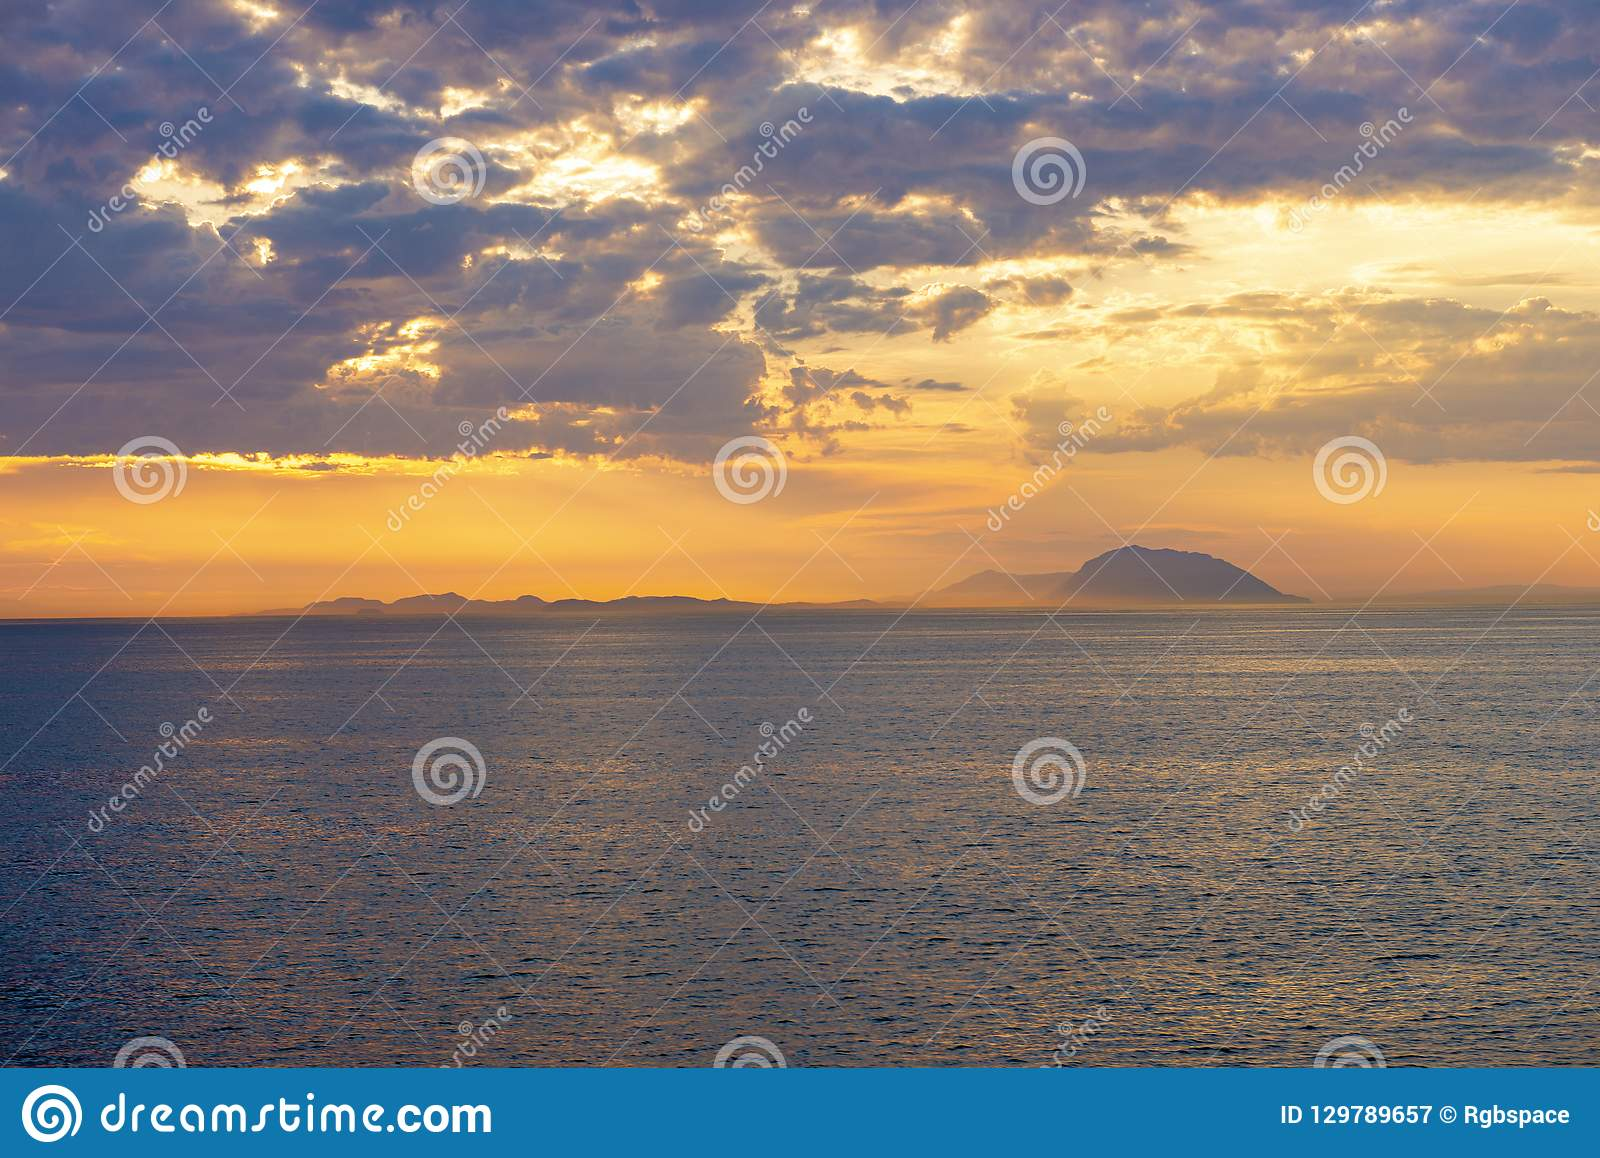 Vancouver Island And Gulf Islands From The Ocean At Sunset